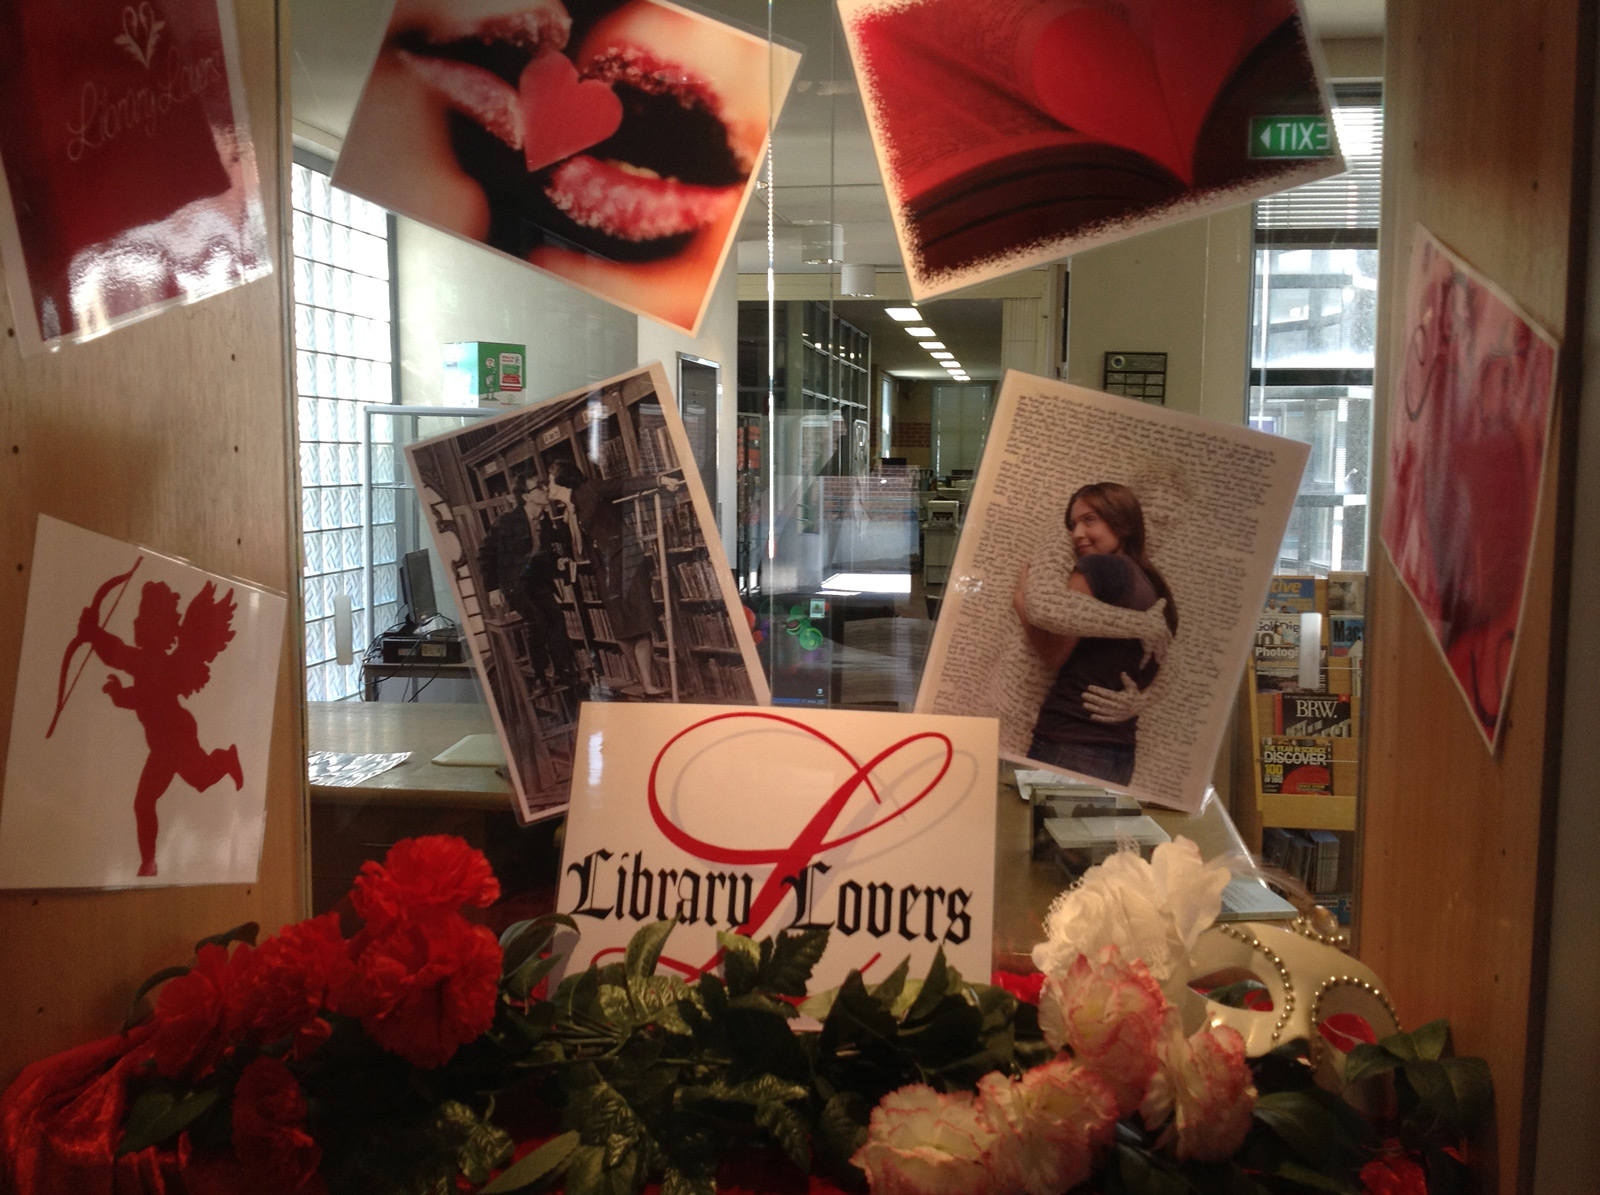 This old-fashioned Valentine's day window display is decorated with flowers and big printed pictures.